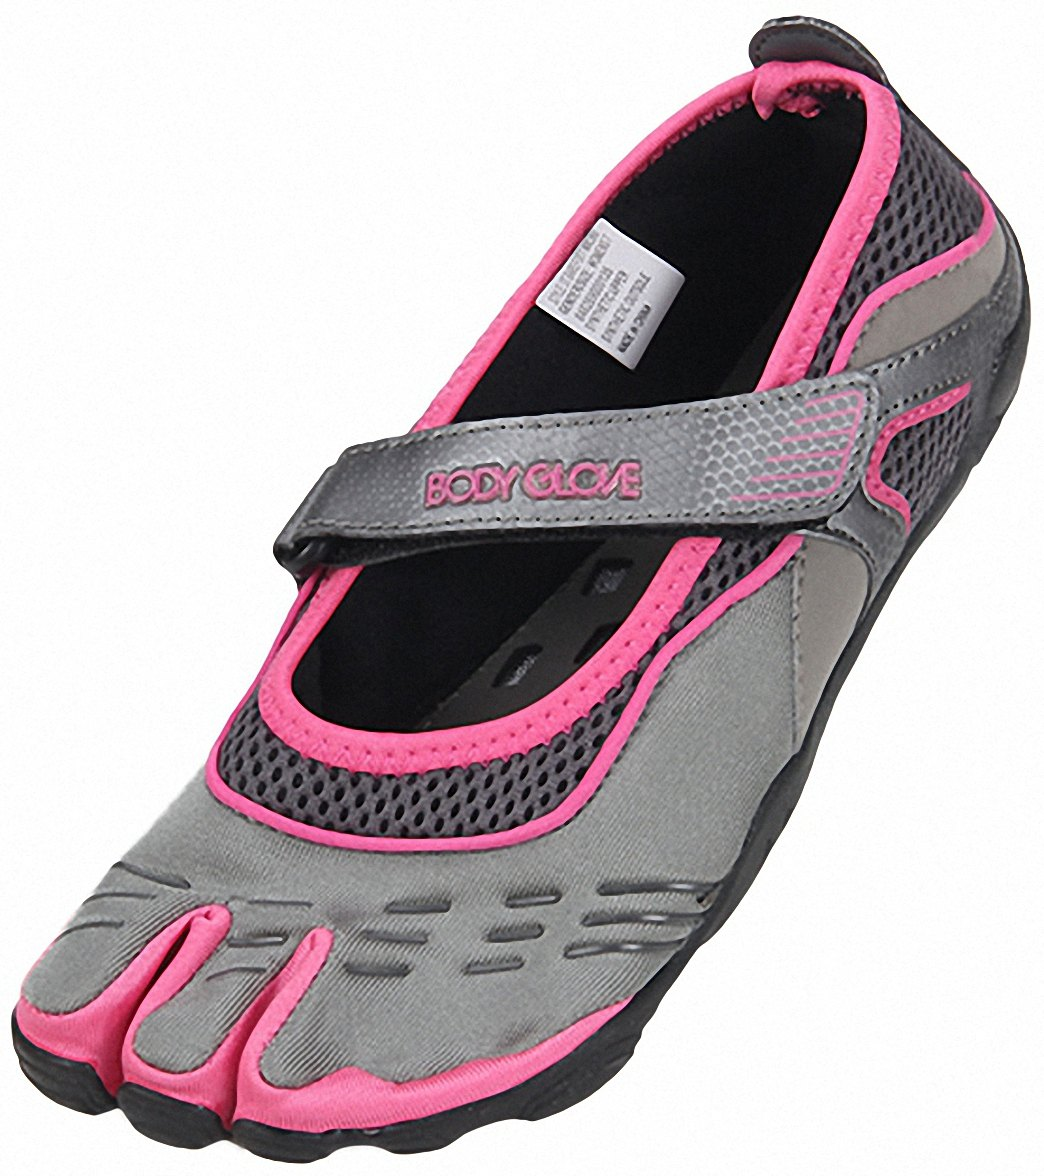 Body Glove Women's 3T Barefoot Malibu Water Shoes at SwimOutlet ...